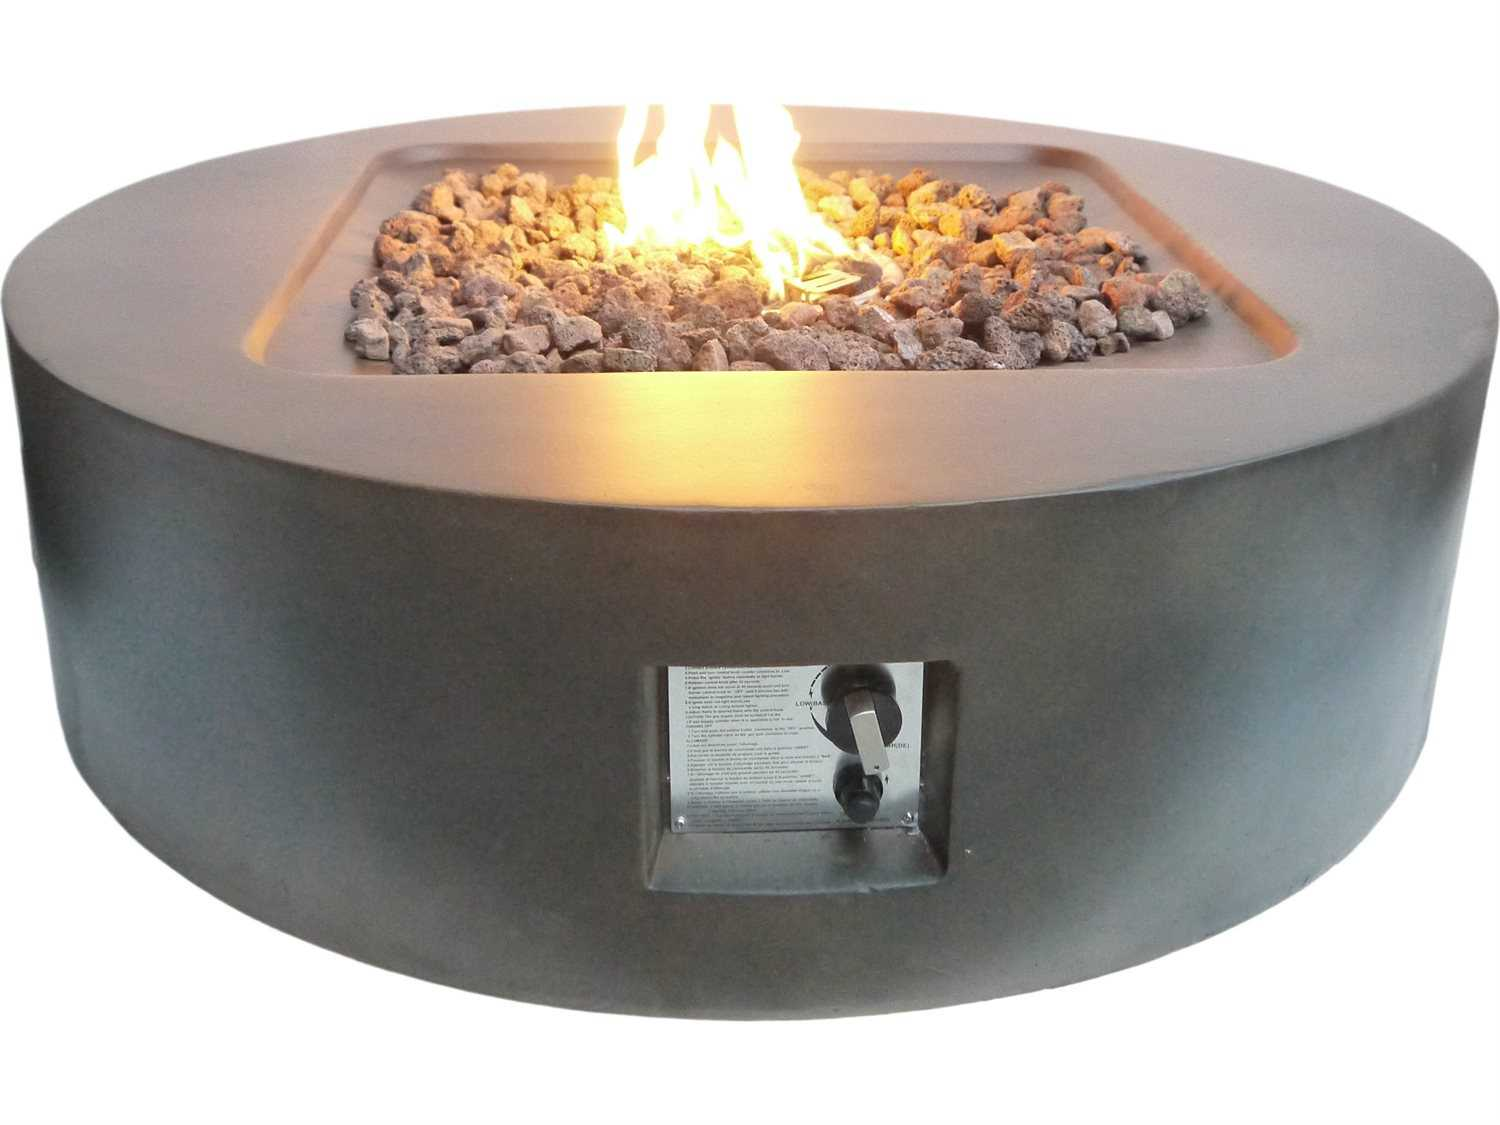 Teva Flint Round Concrete 42W x 12H Firepit in Brown